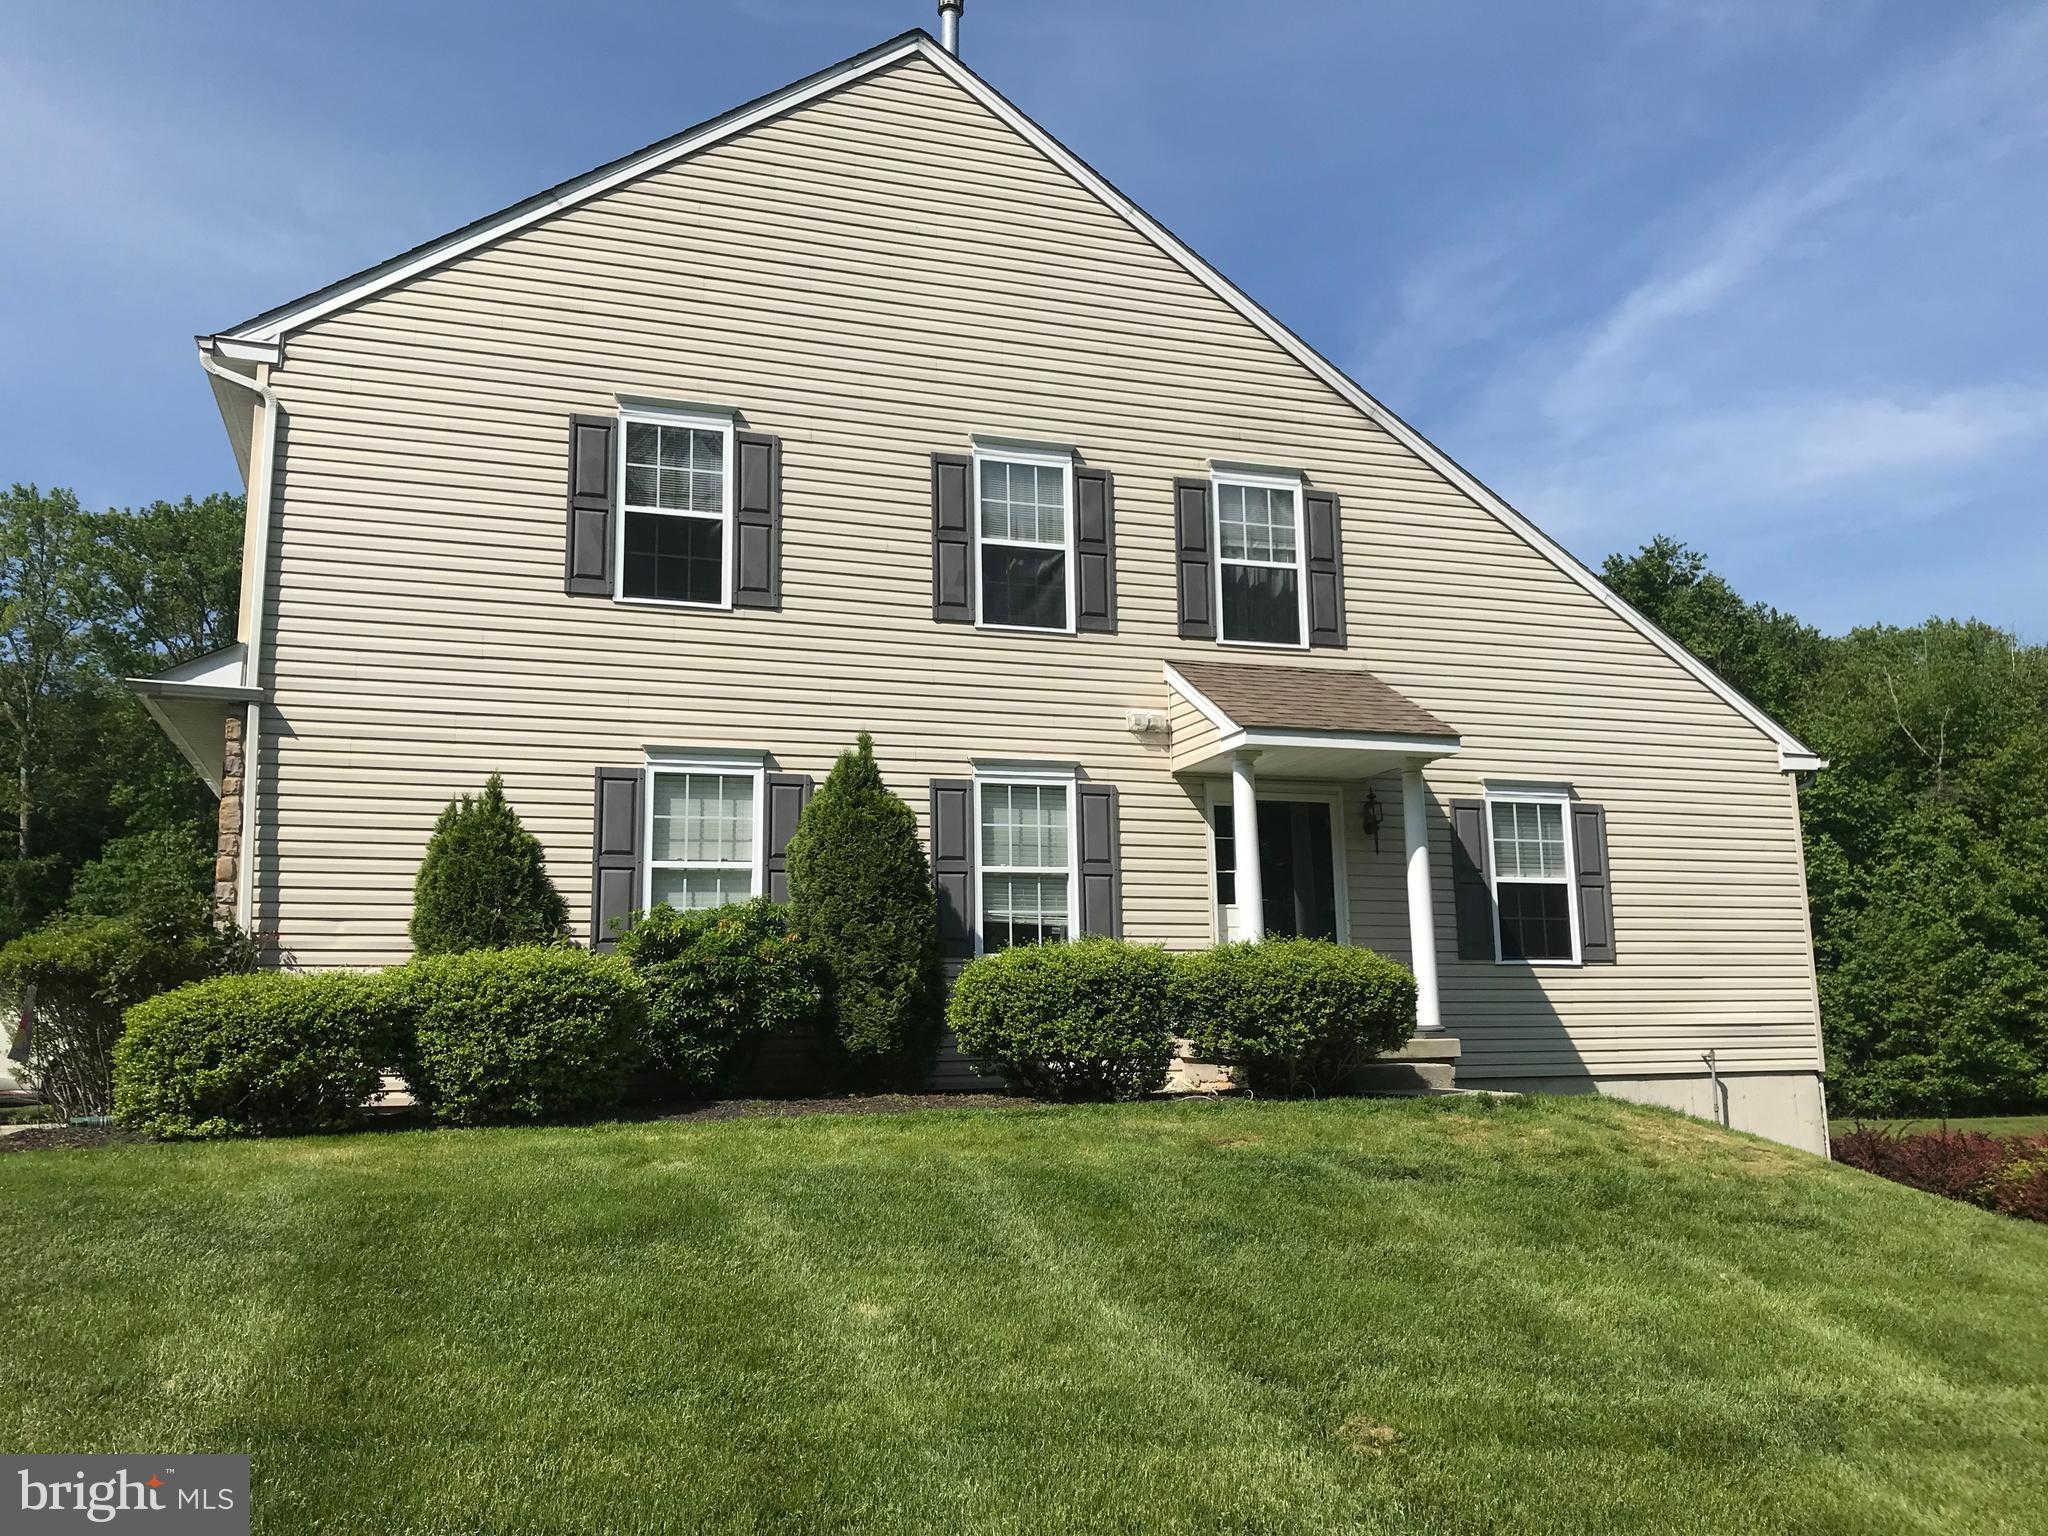 110 Celestino CT, Blackwood, NJ 08012 now has a new price of $189,500!